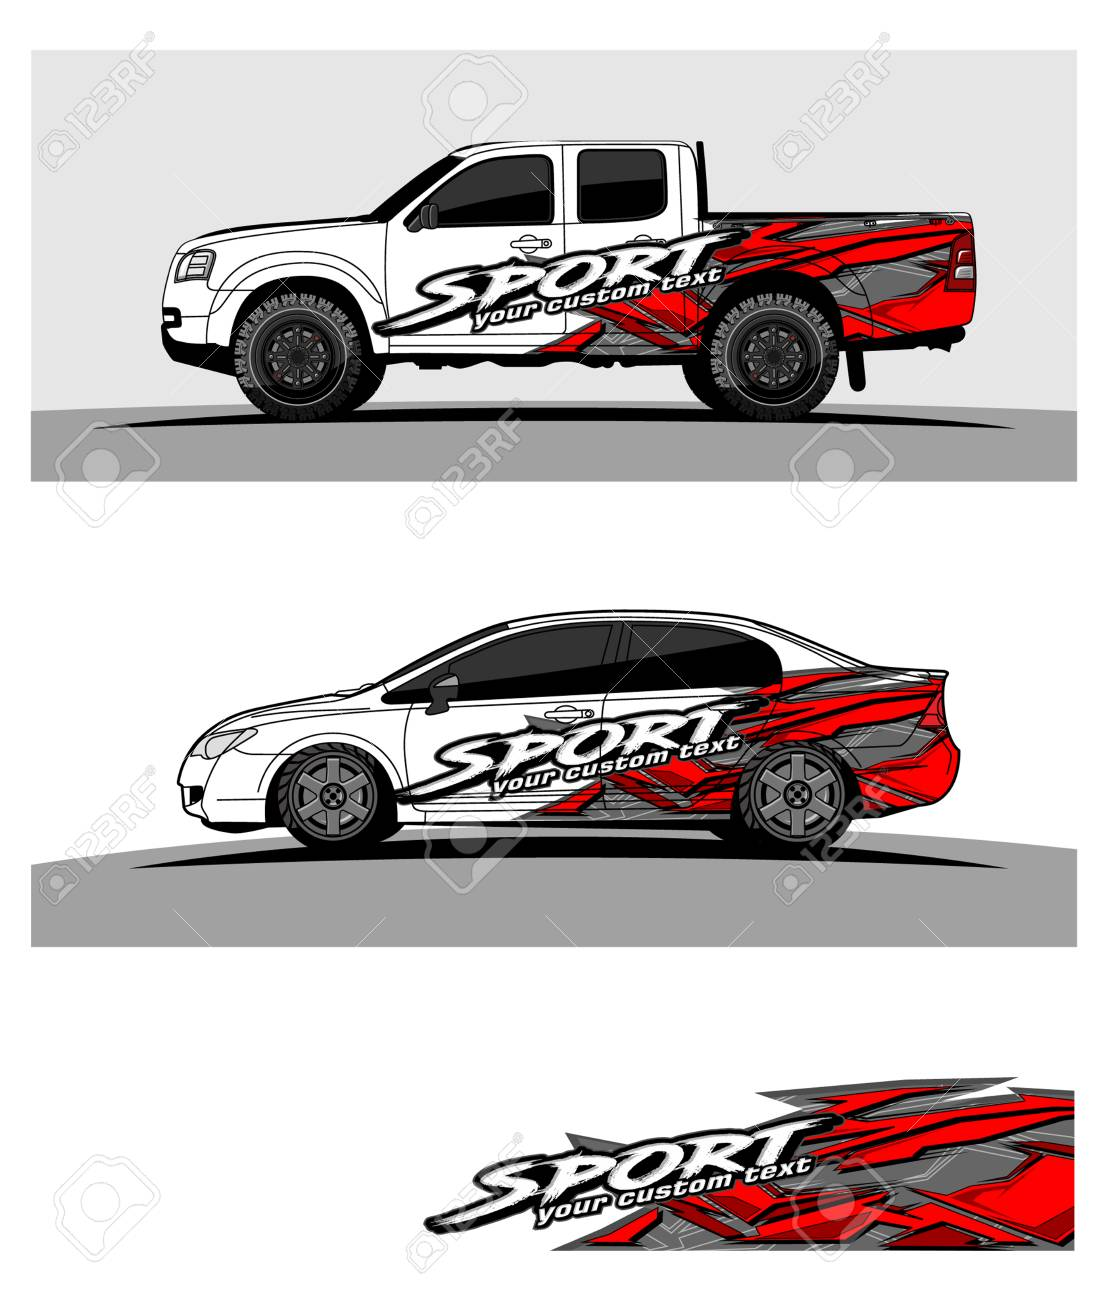 Car graphic vector abstract racing shape design for vehicle vinyl wrap stock vector 100256493